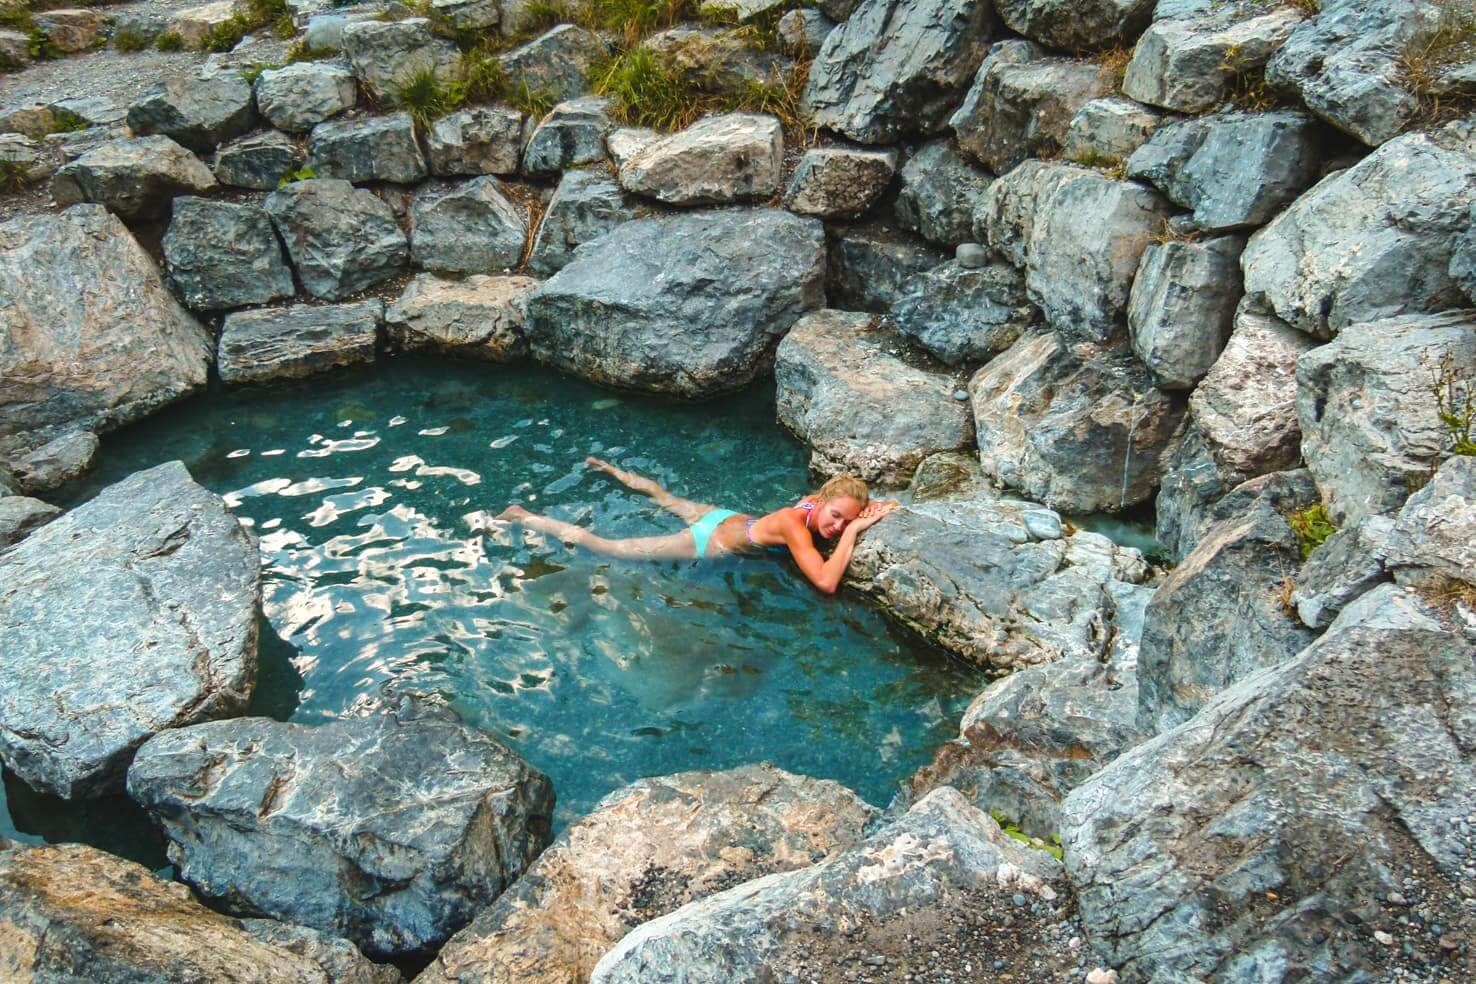 Canadian Rockies road trip itinerary - Lussier Hot Springs in Whiteswan Provincial Park